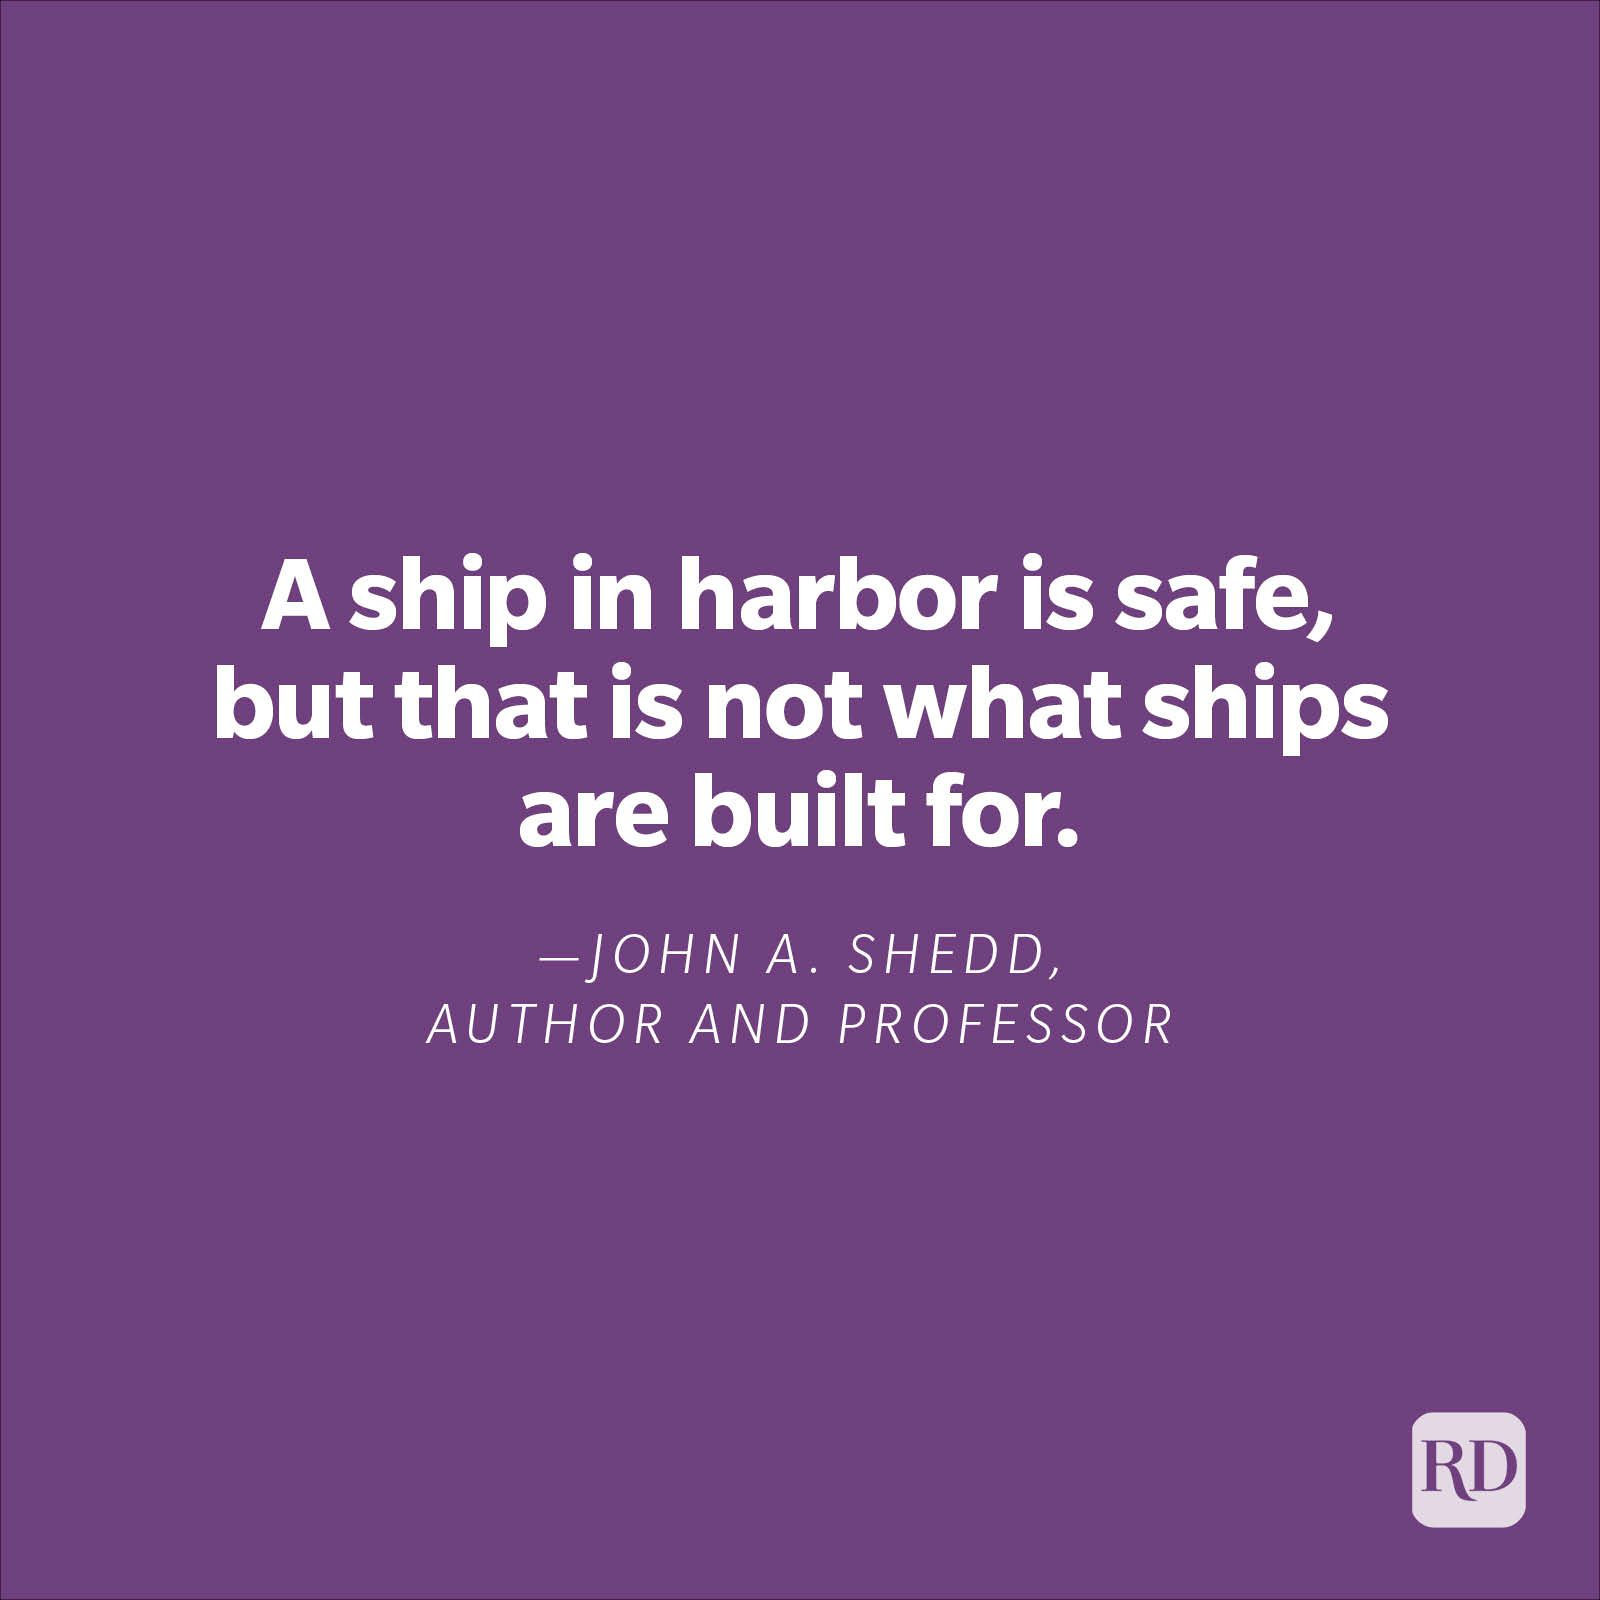 """""""A ship in harbor is safe, but that is not what ships are built for.""""—John A. Shedd, author, and professor."""